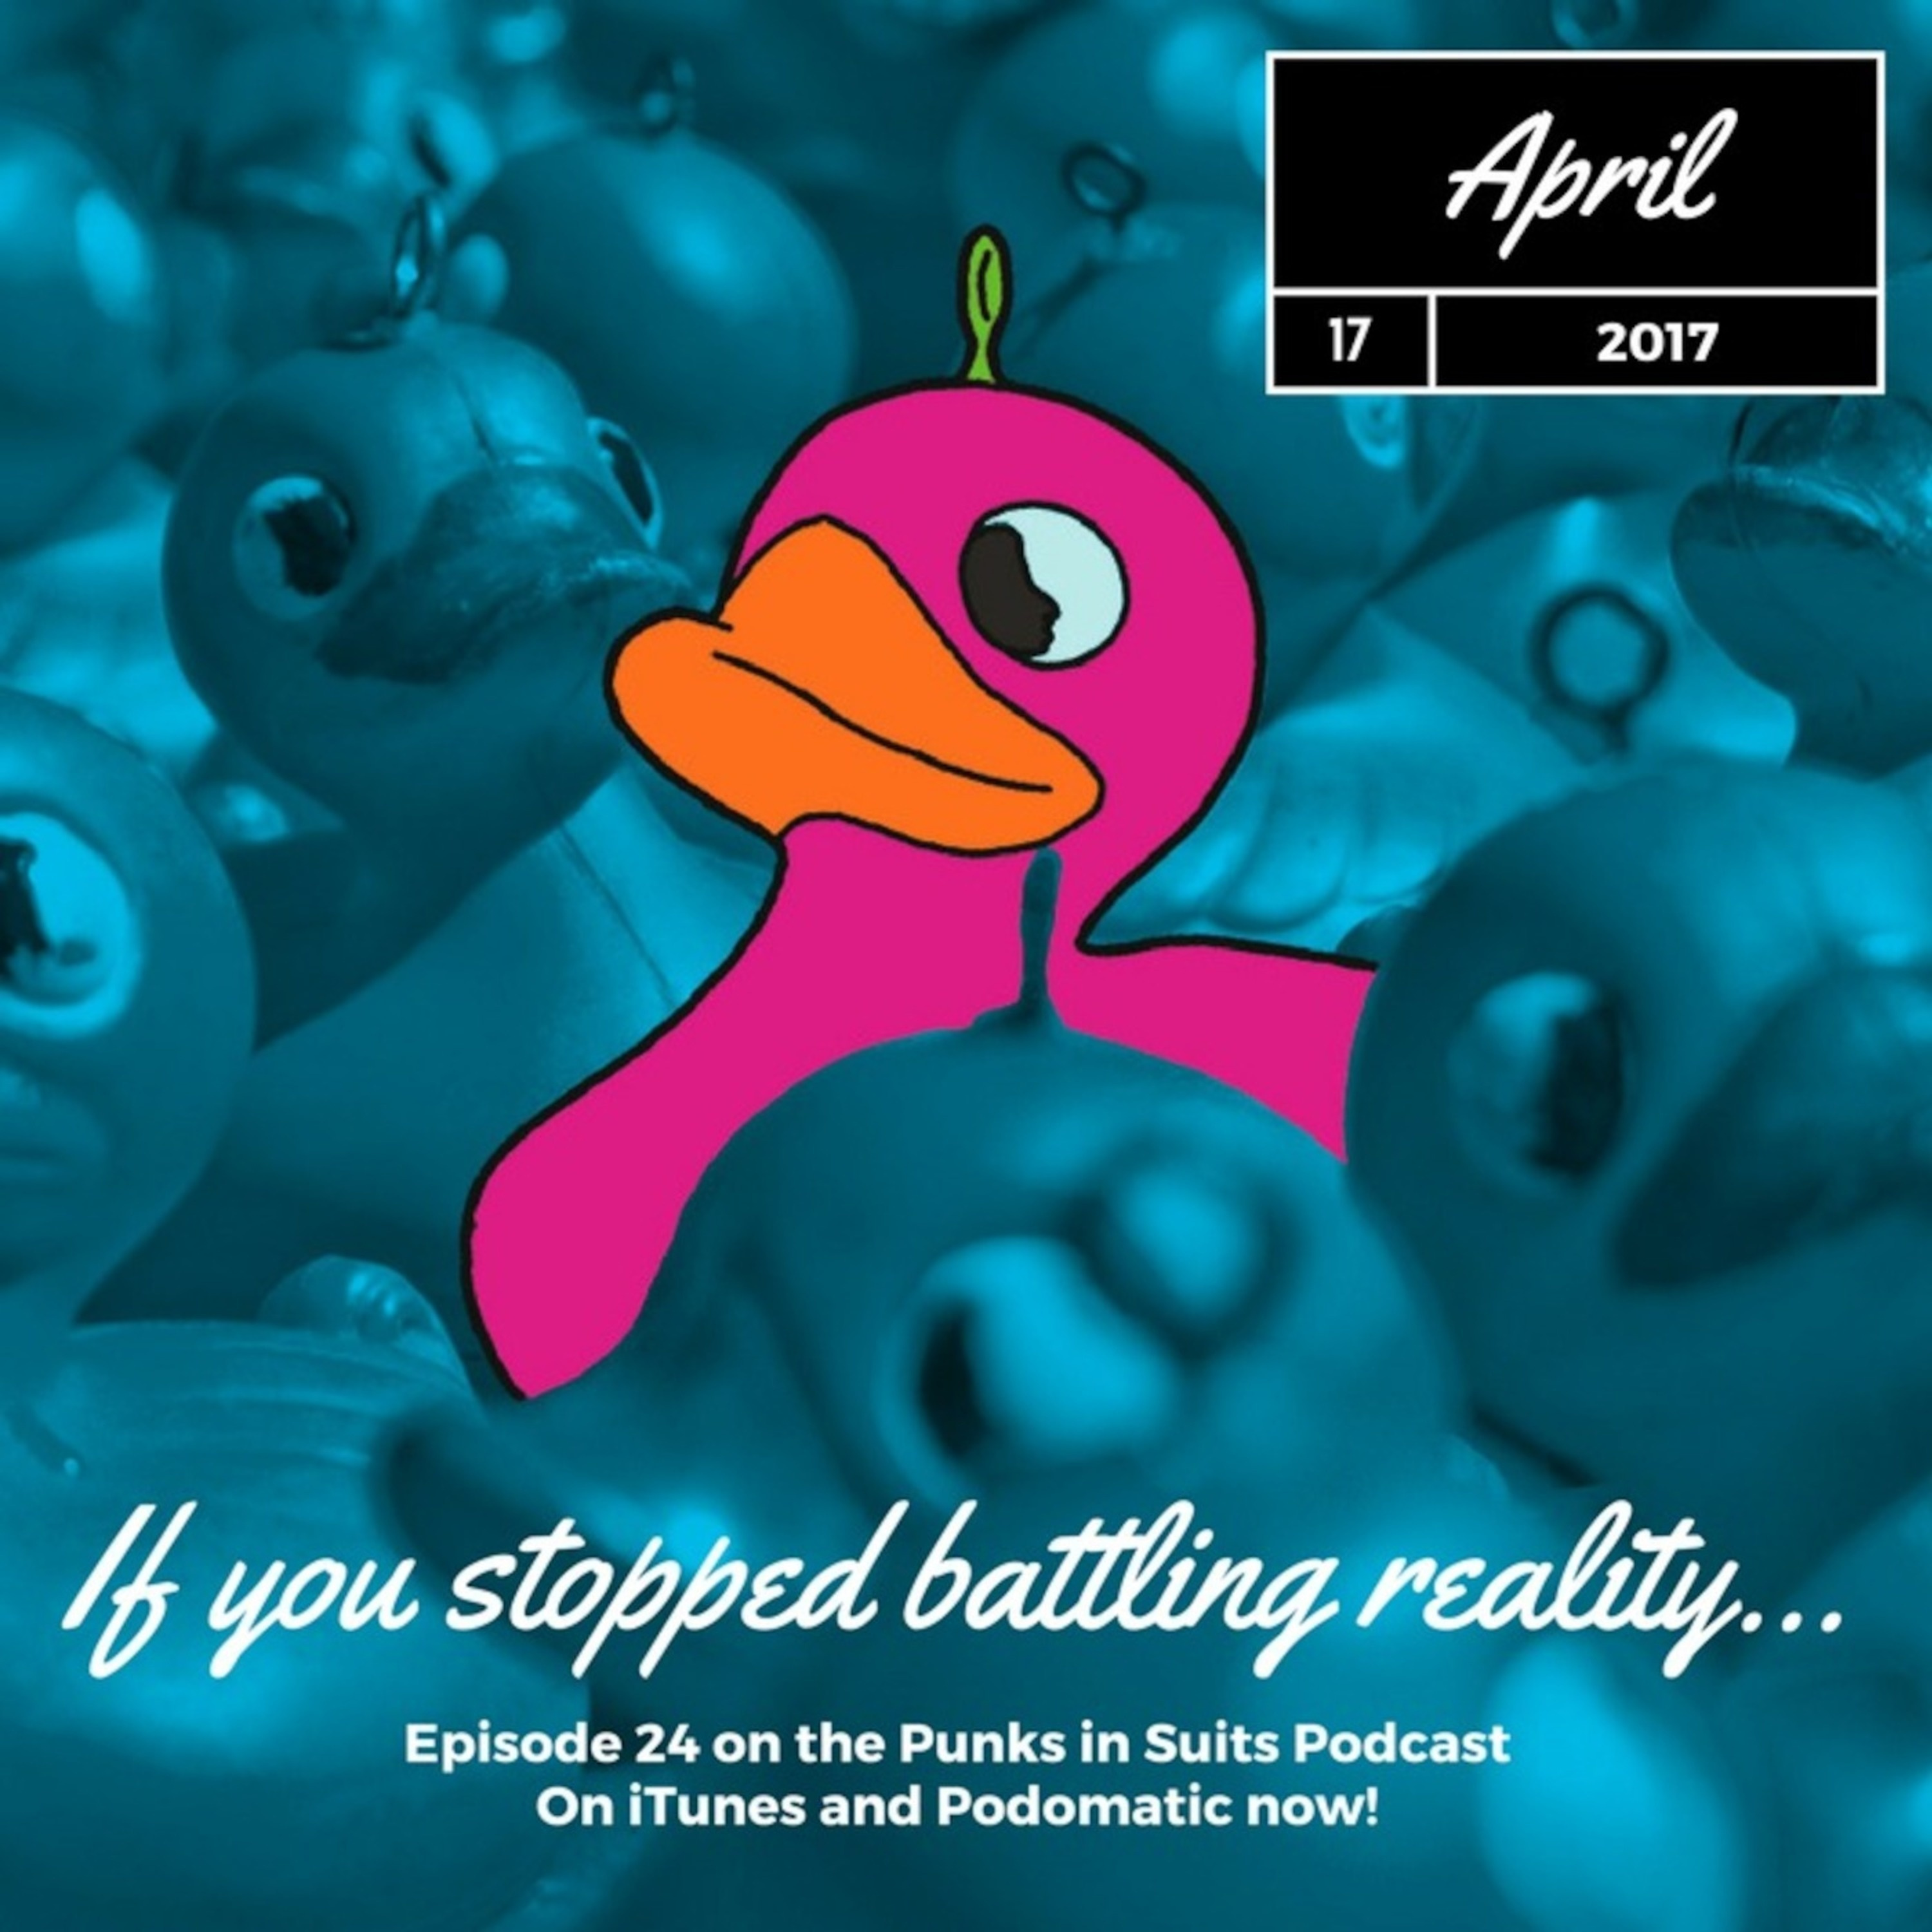 Episode 24: If you stopped battling reality...